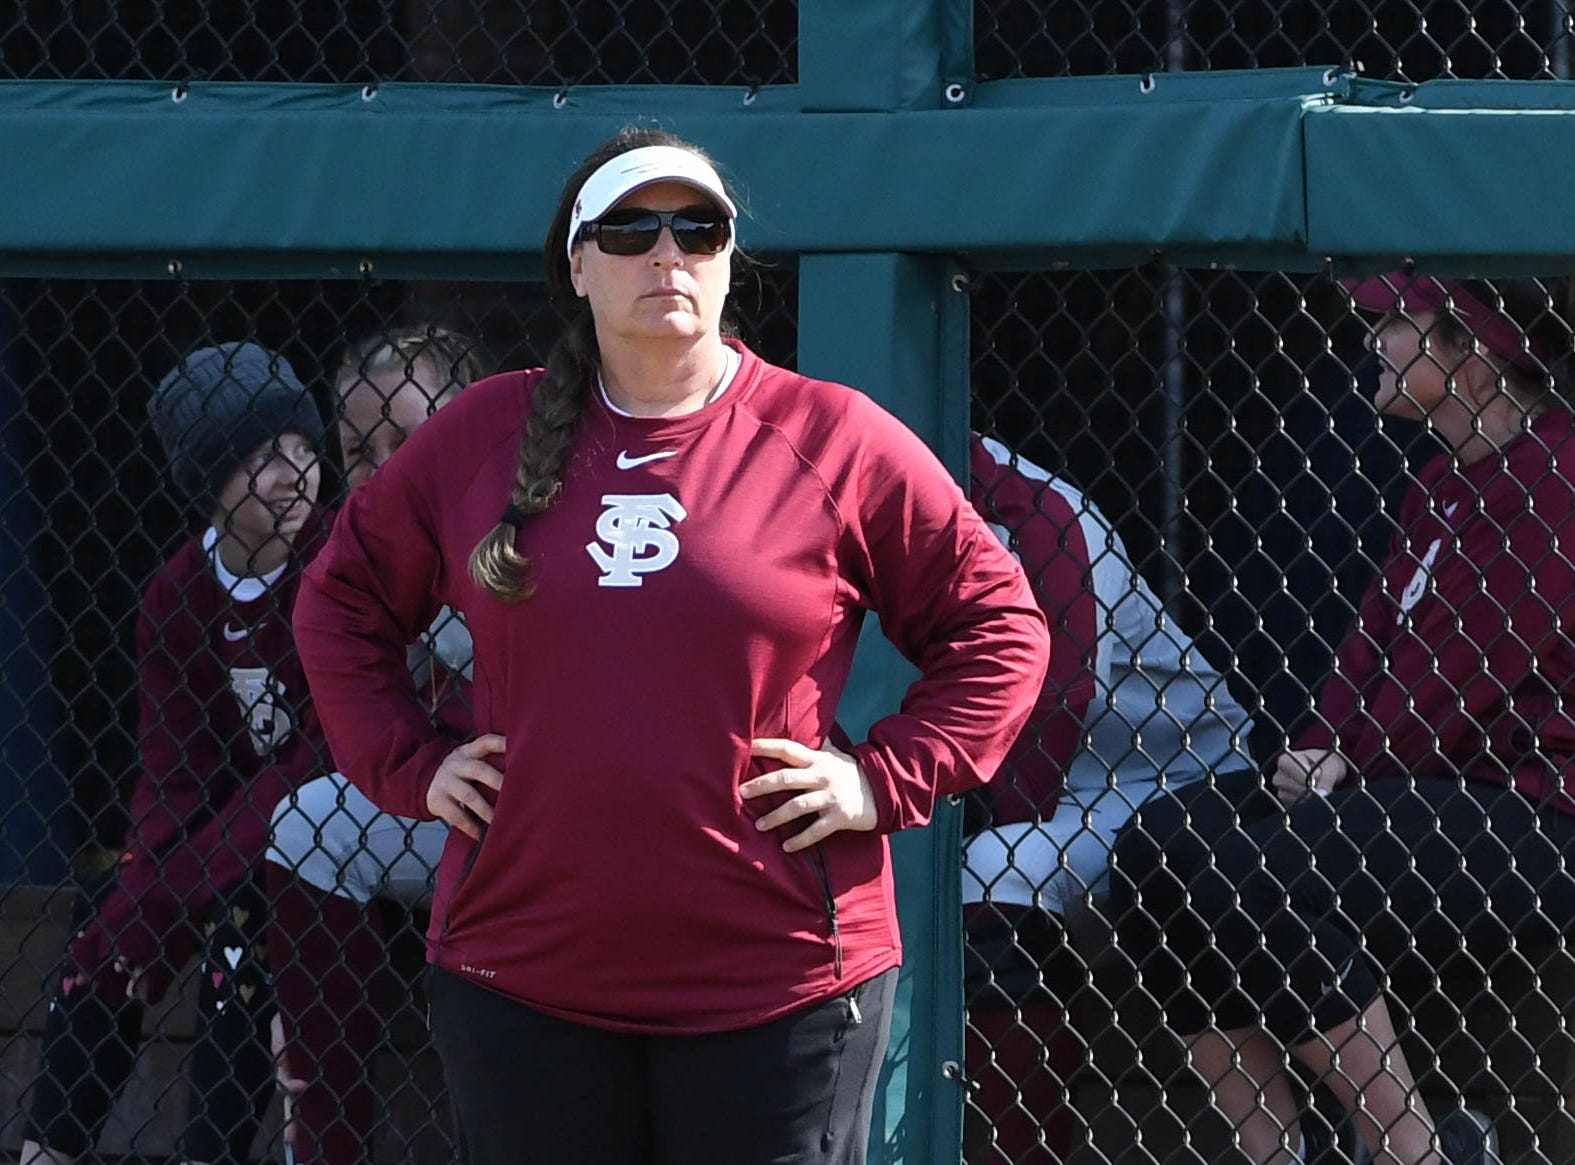 FSU head coach Lonni Alameda coaching in FSU's game against UNCG at Joanne Graf field on February 9, 2019.